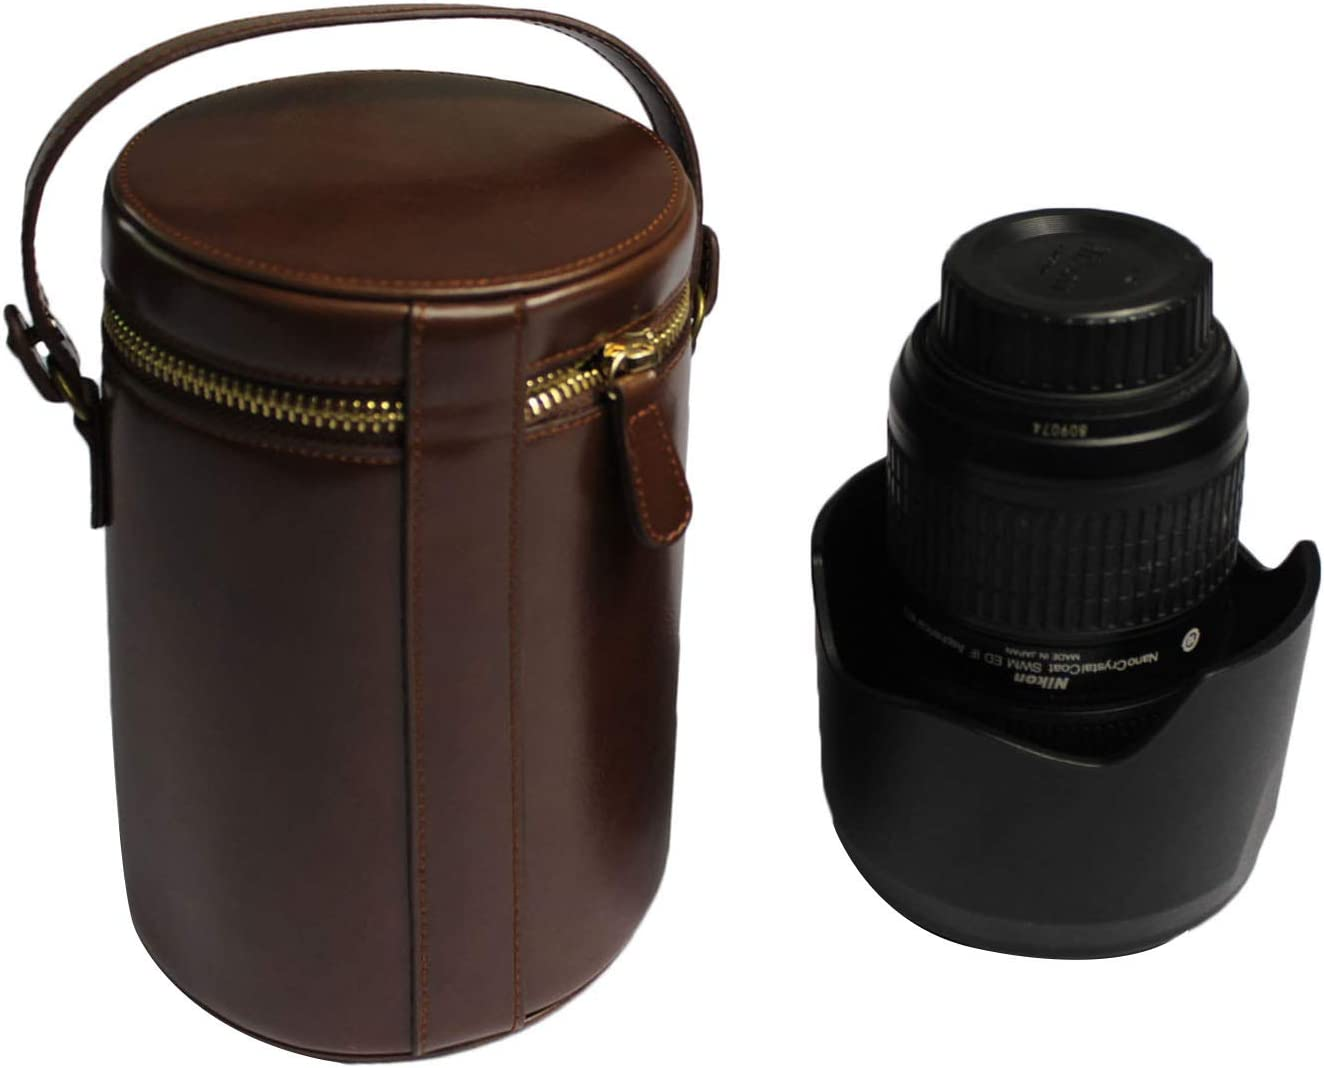 Zipper PU Leather Lens Case Lens Pouch Bag with Removable Strap for DSLR Camera Lens Fit for Canon, Nikon, Sony, Olympus, Panasonic Dark Brown M